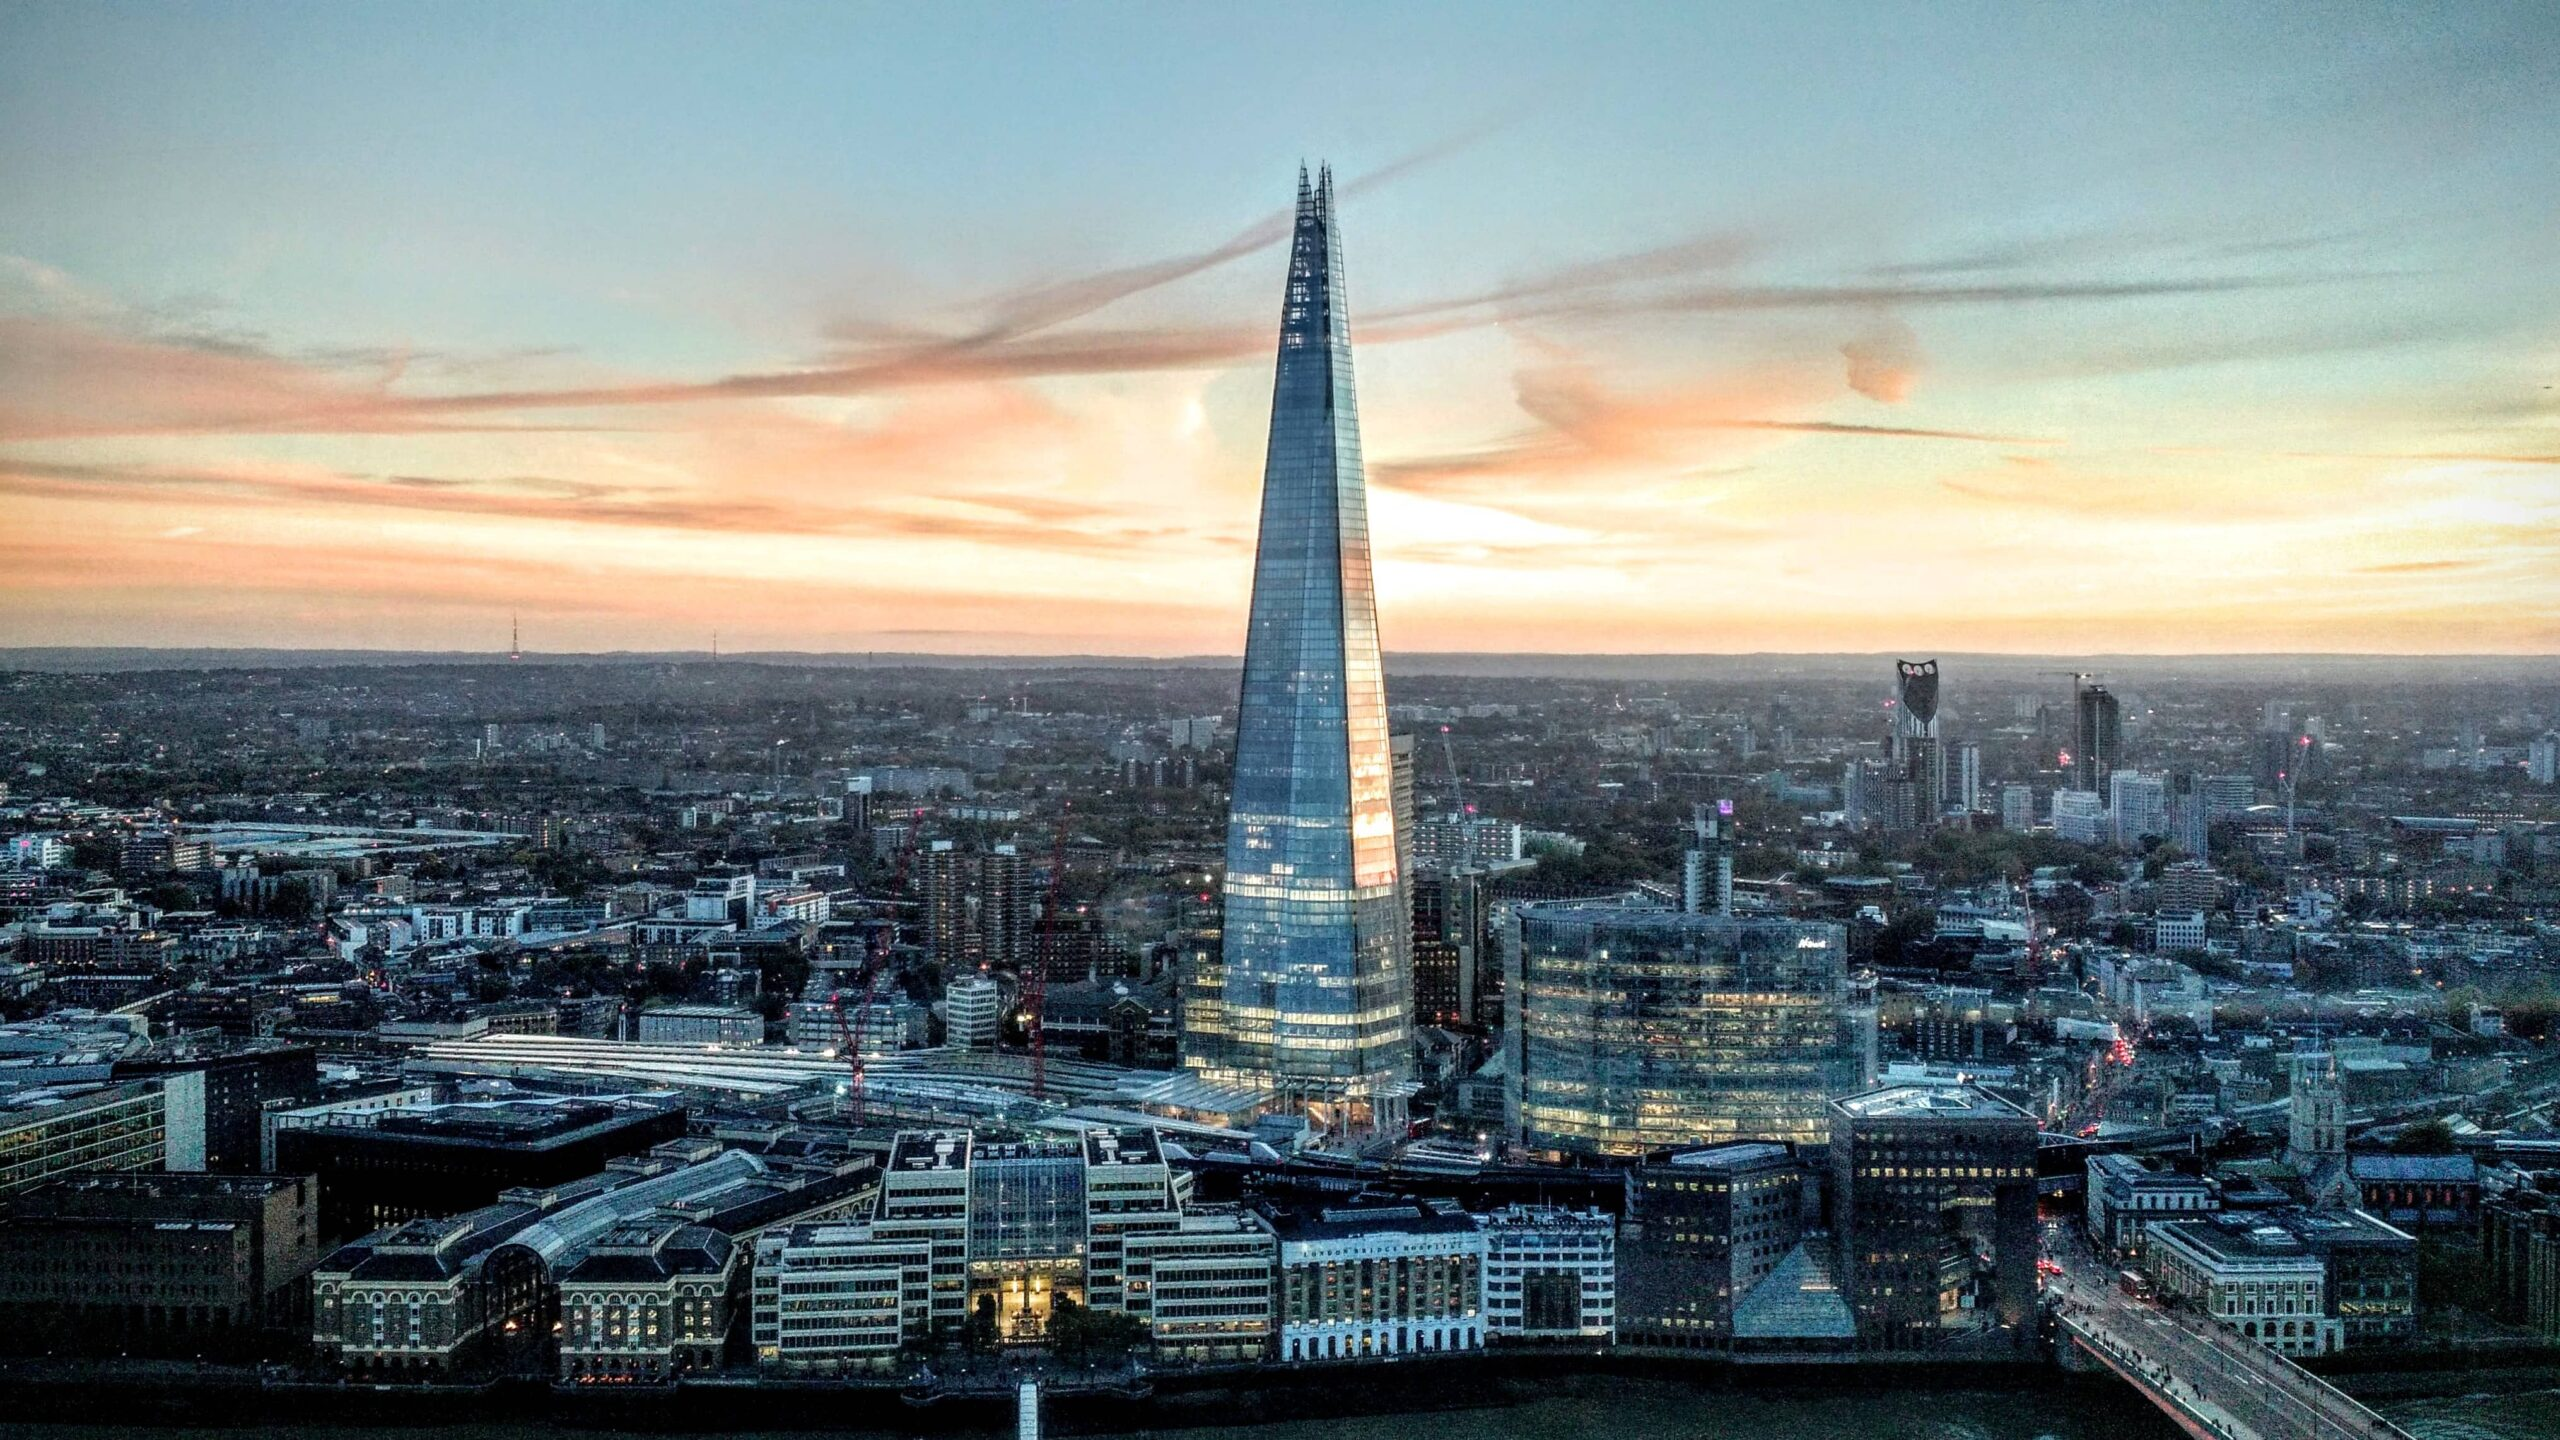 iconic architecture from around the UK